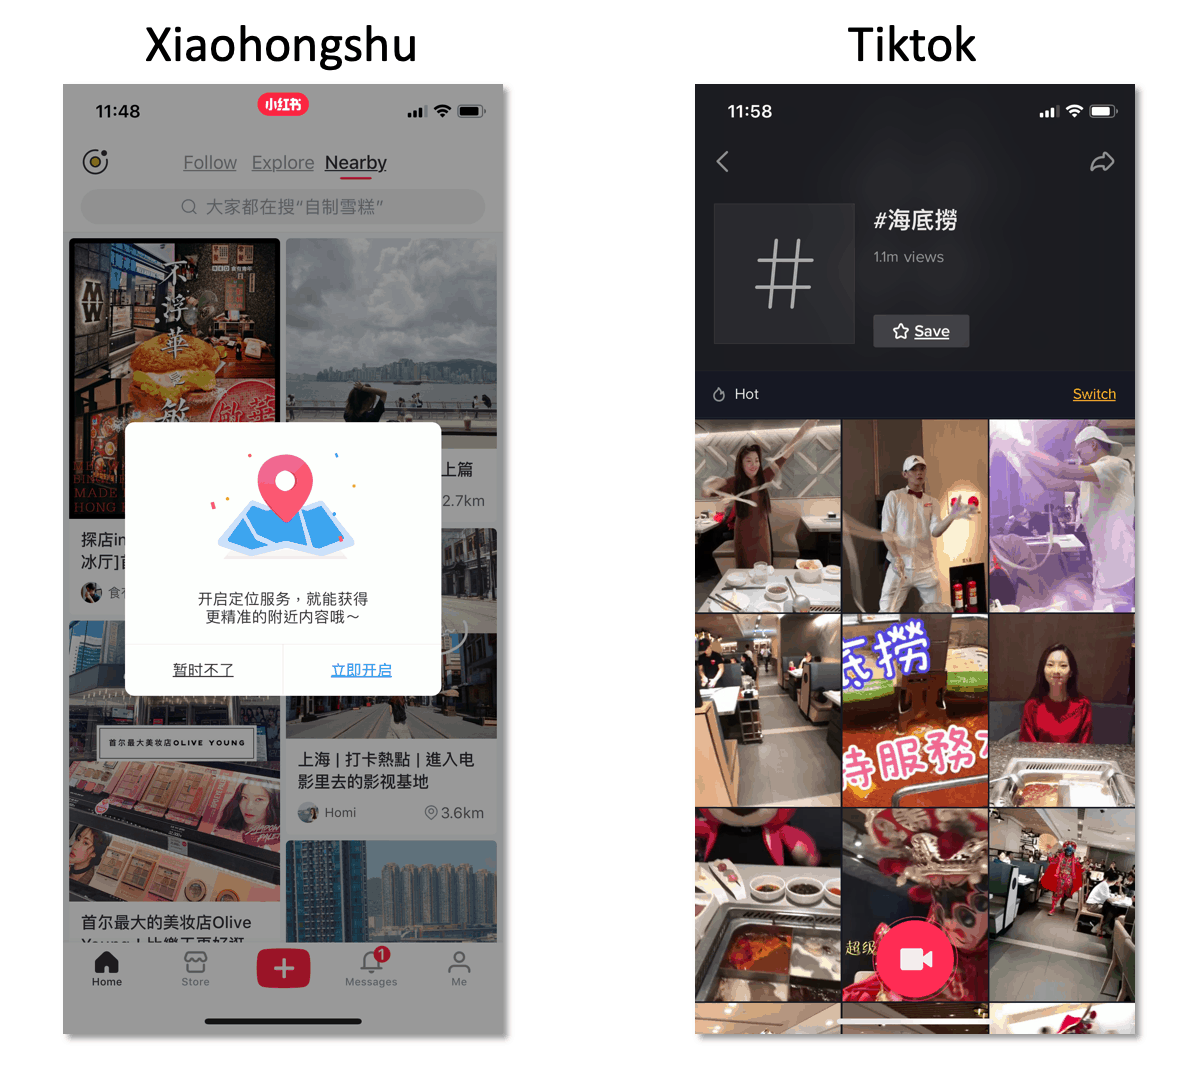 Xiahongshu and TikTok both offer geographic location hashtags to spread your content on a local level